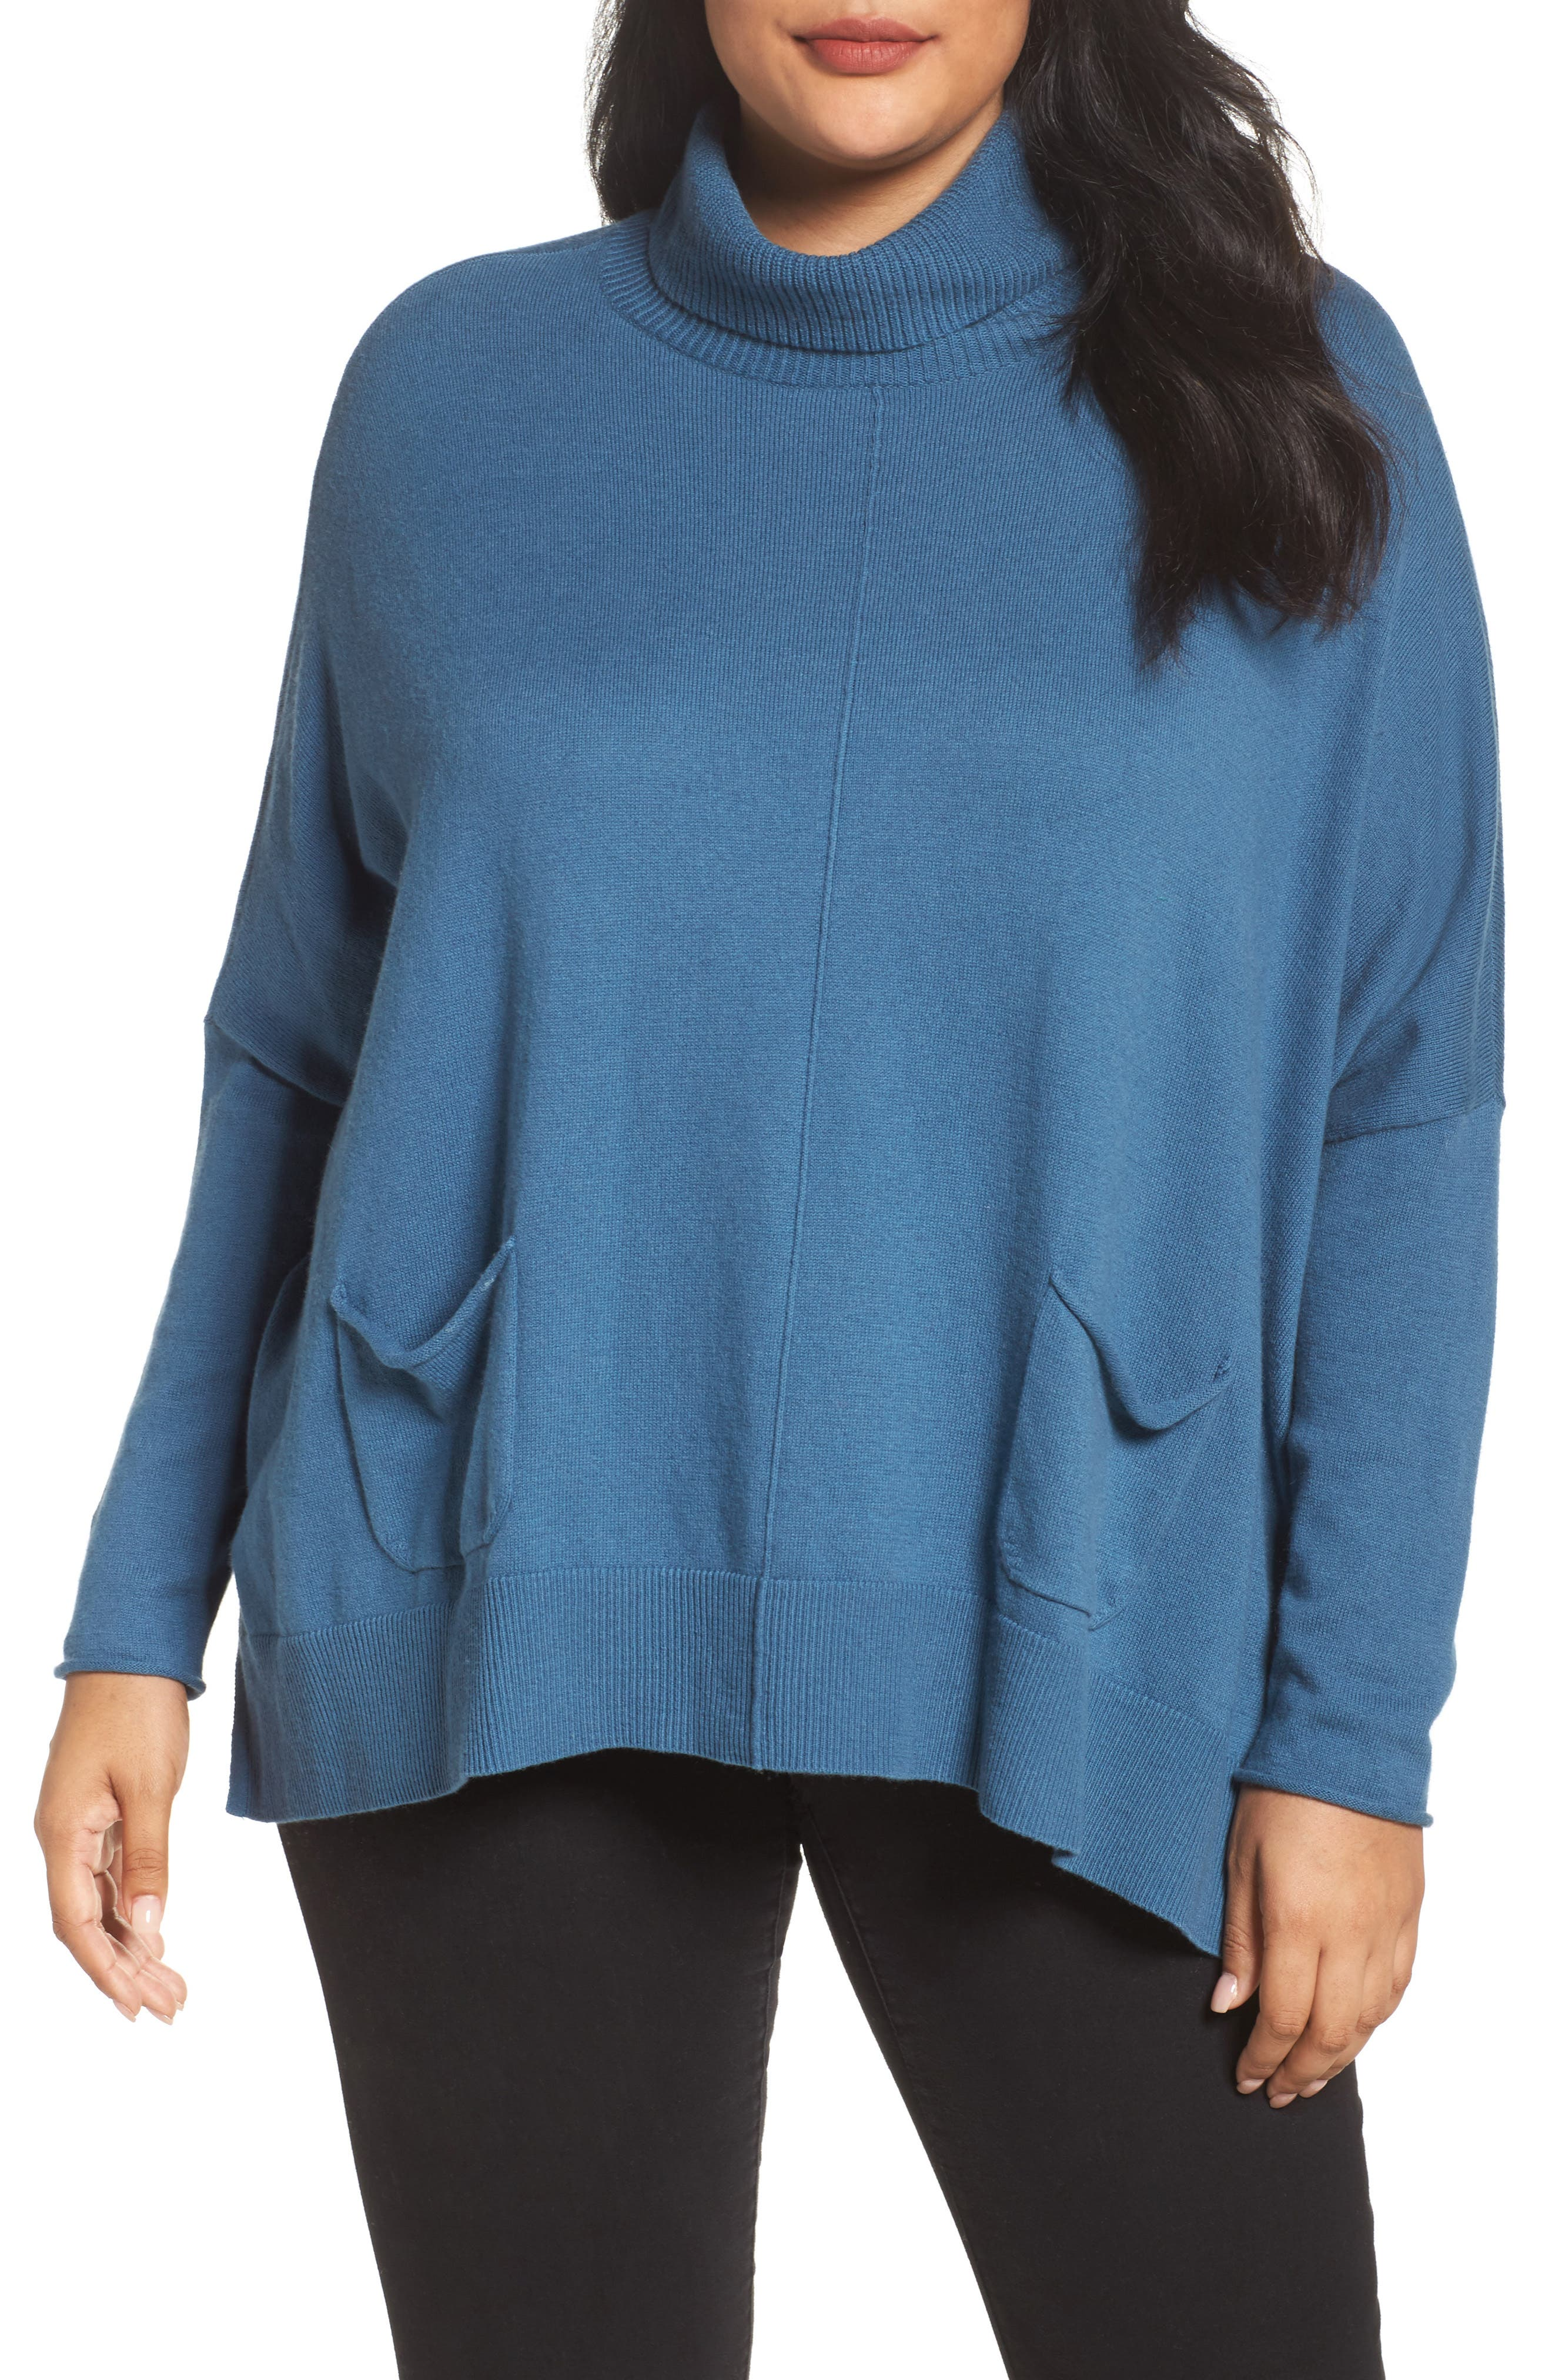 Relaxed Cotton & Cashmere Sweater,                             Main thumbnail 1, color,                             Teal Sound